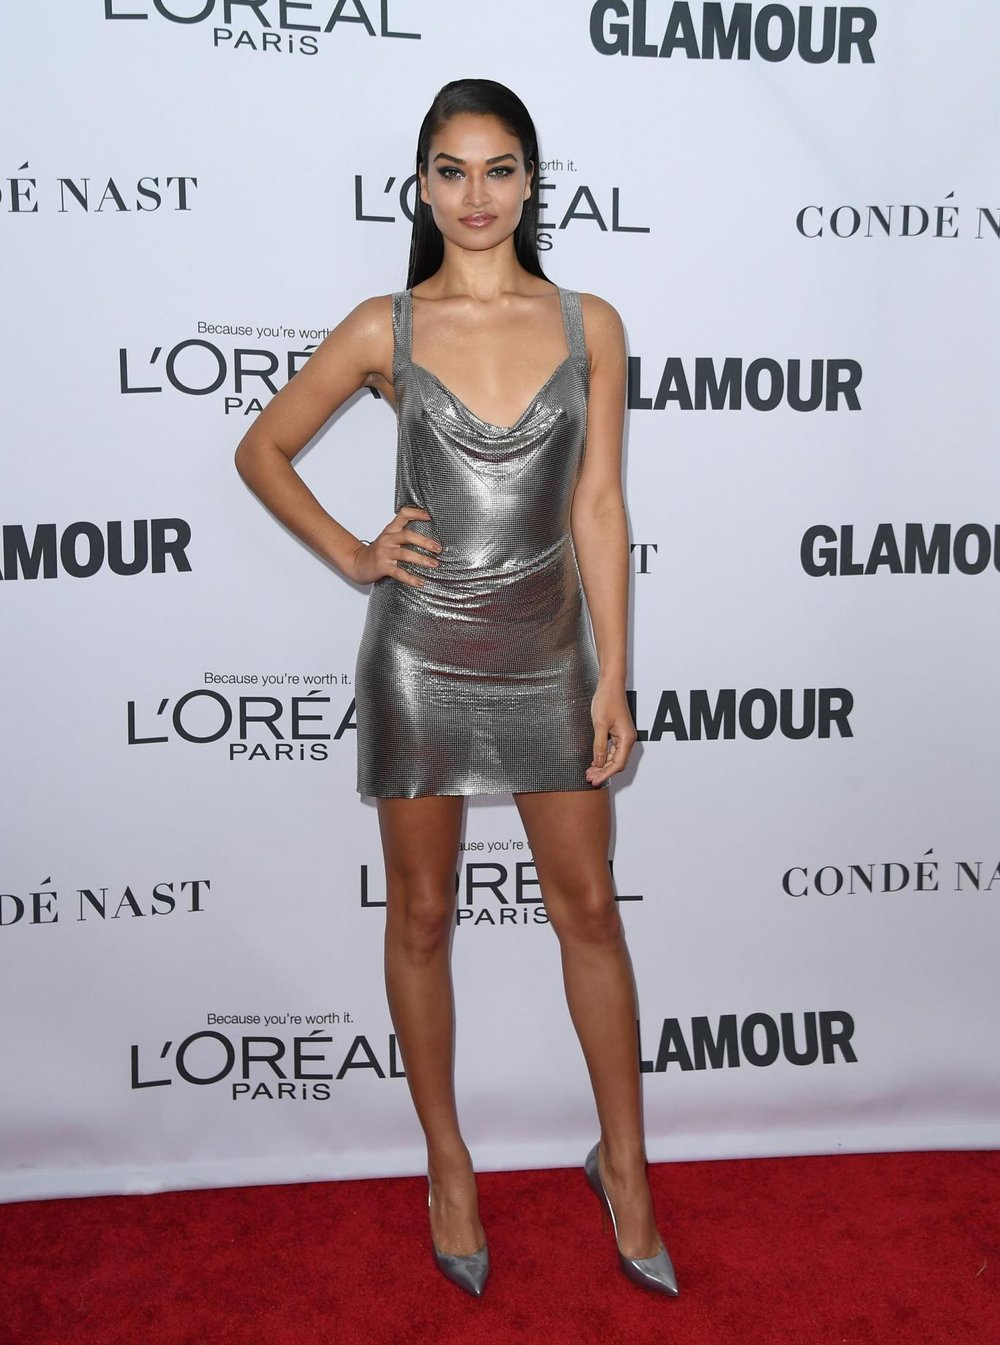 Shine Shanina - This metallic dress look Shaik is strutting is so on trend right now.